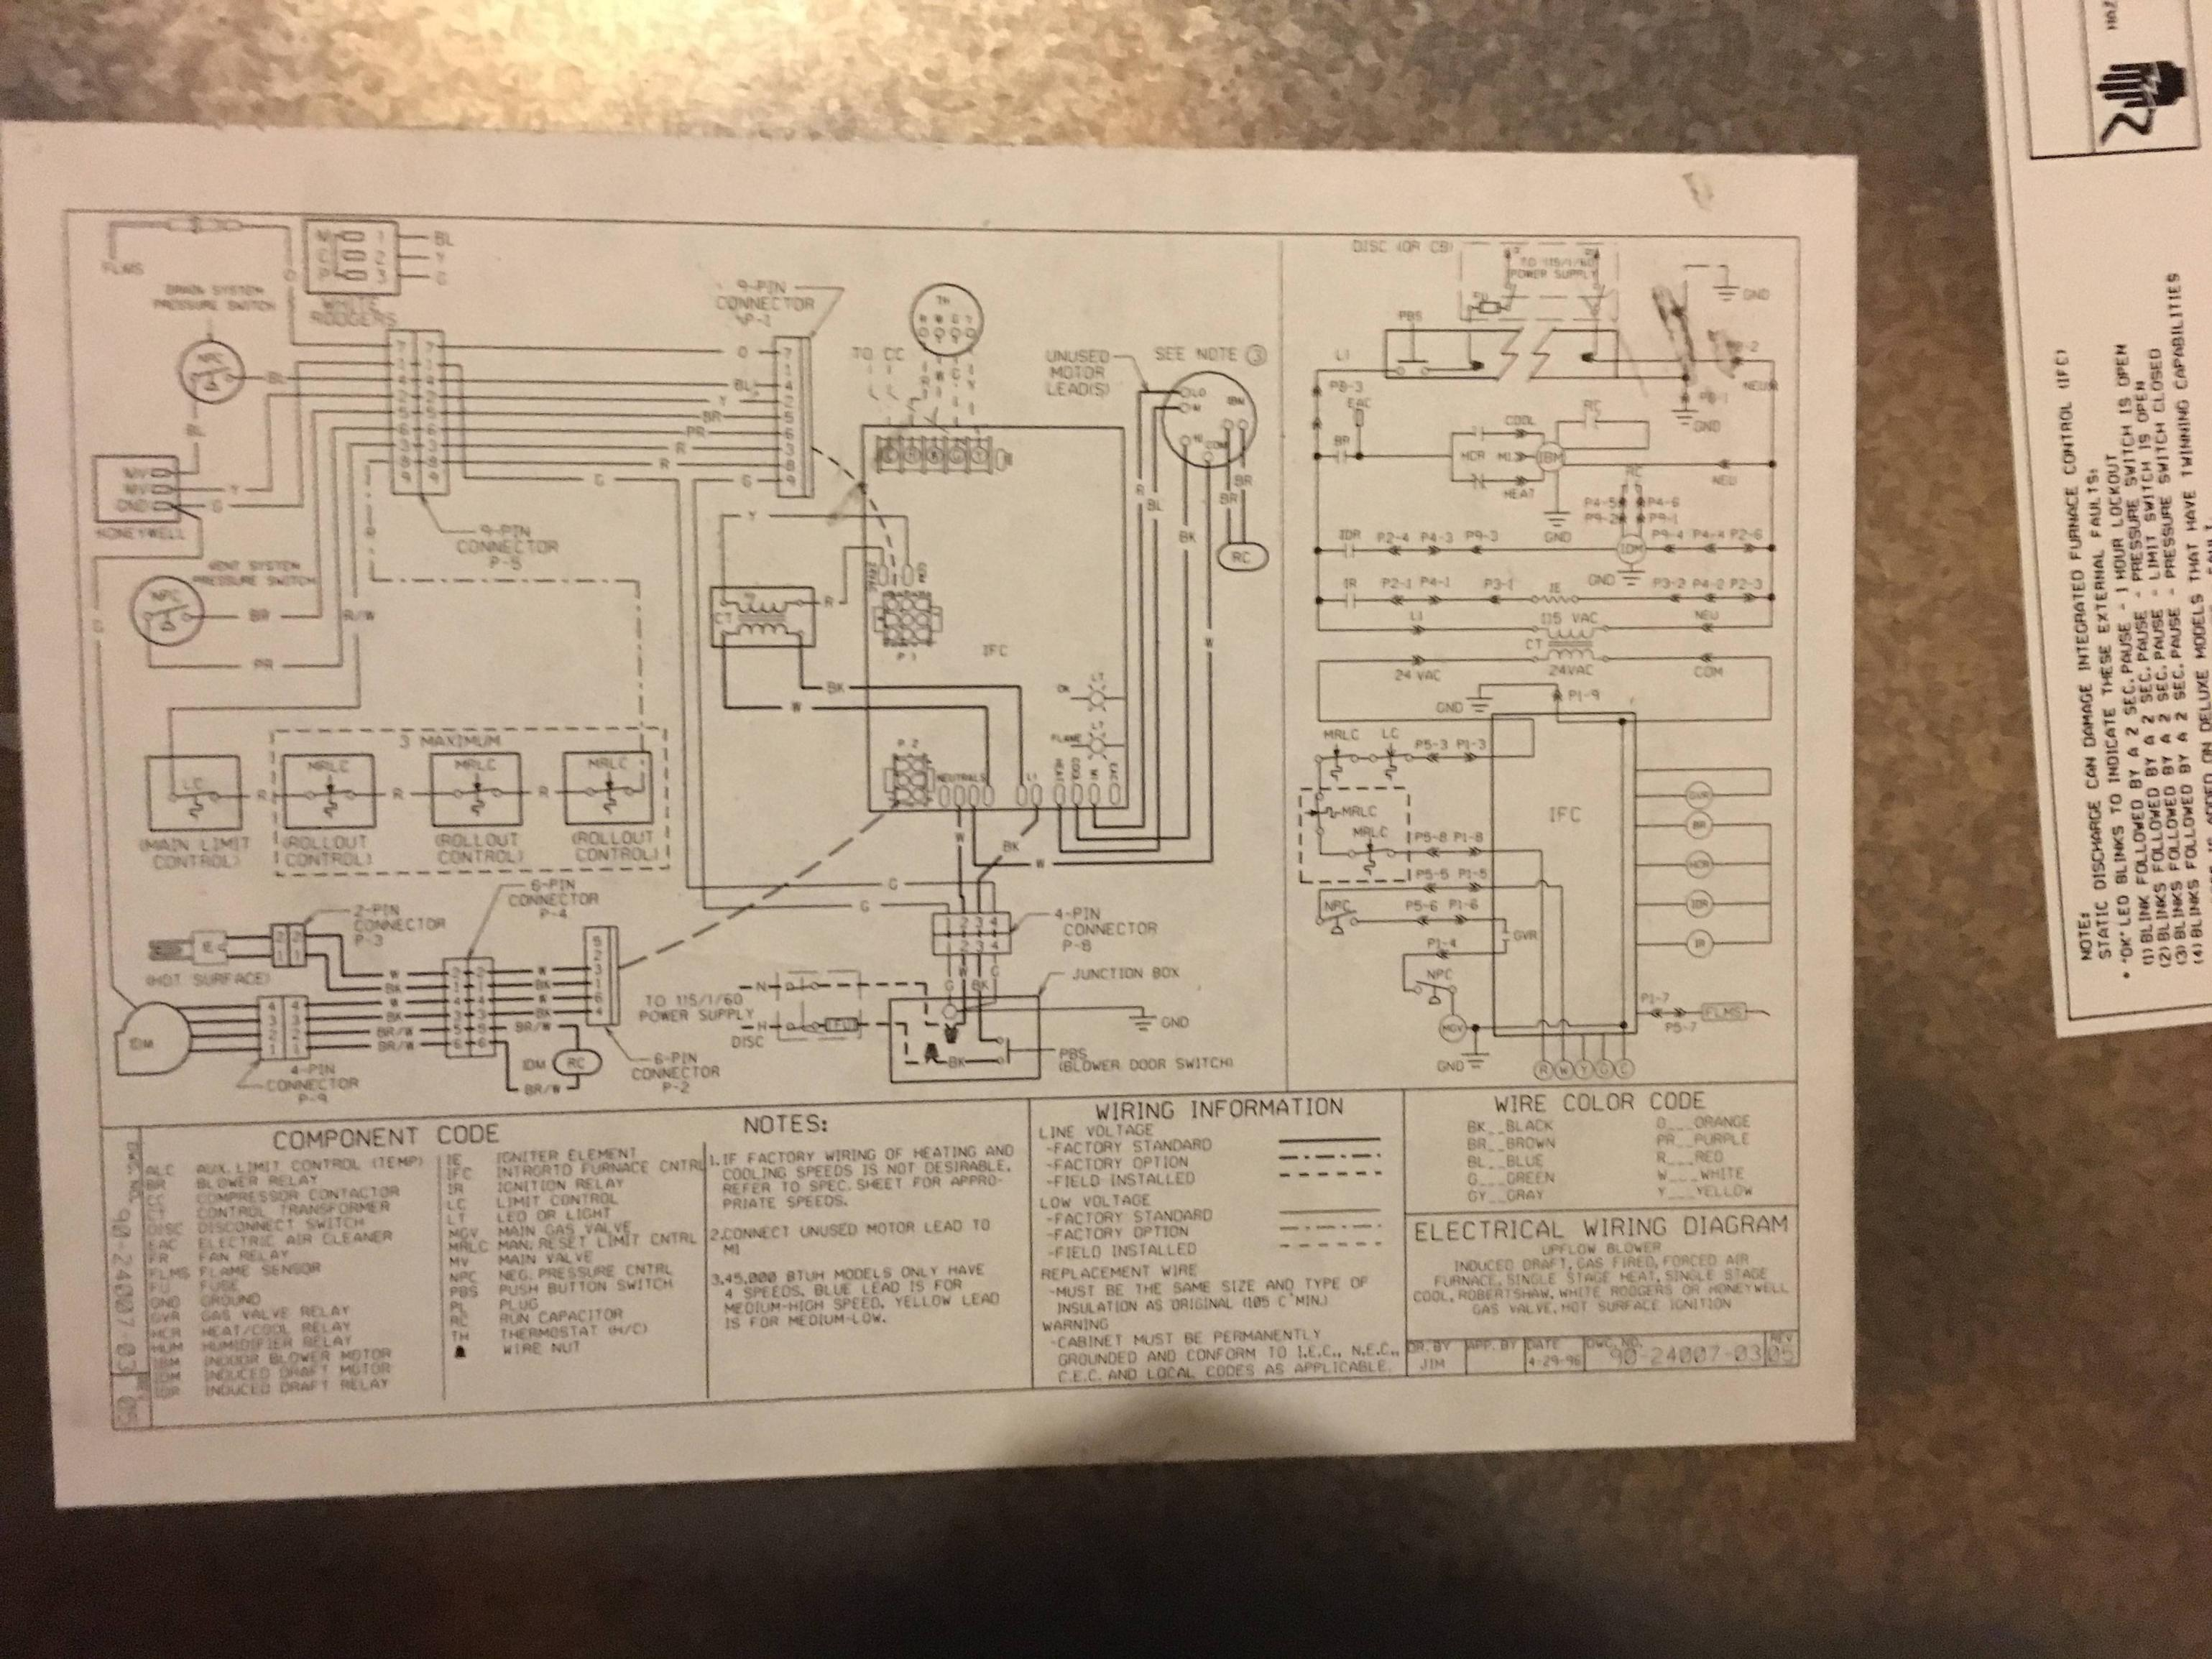 hvac transformer wiring diagram 2004 jeep grand cherokee stereo thermostat can i connect the r and c wires directly to